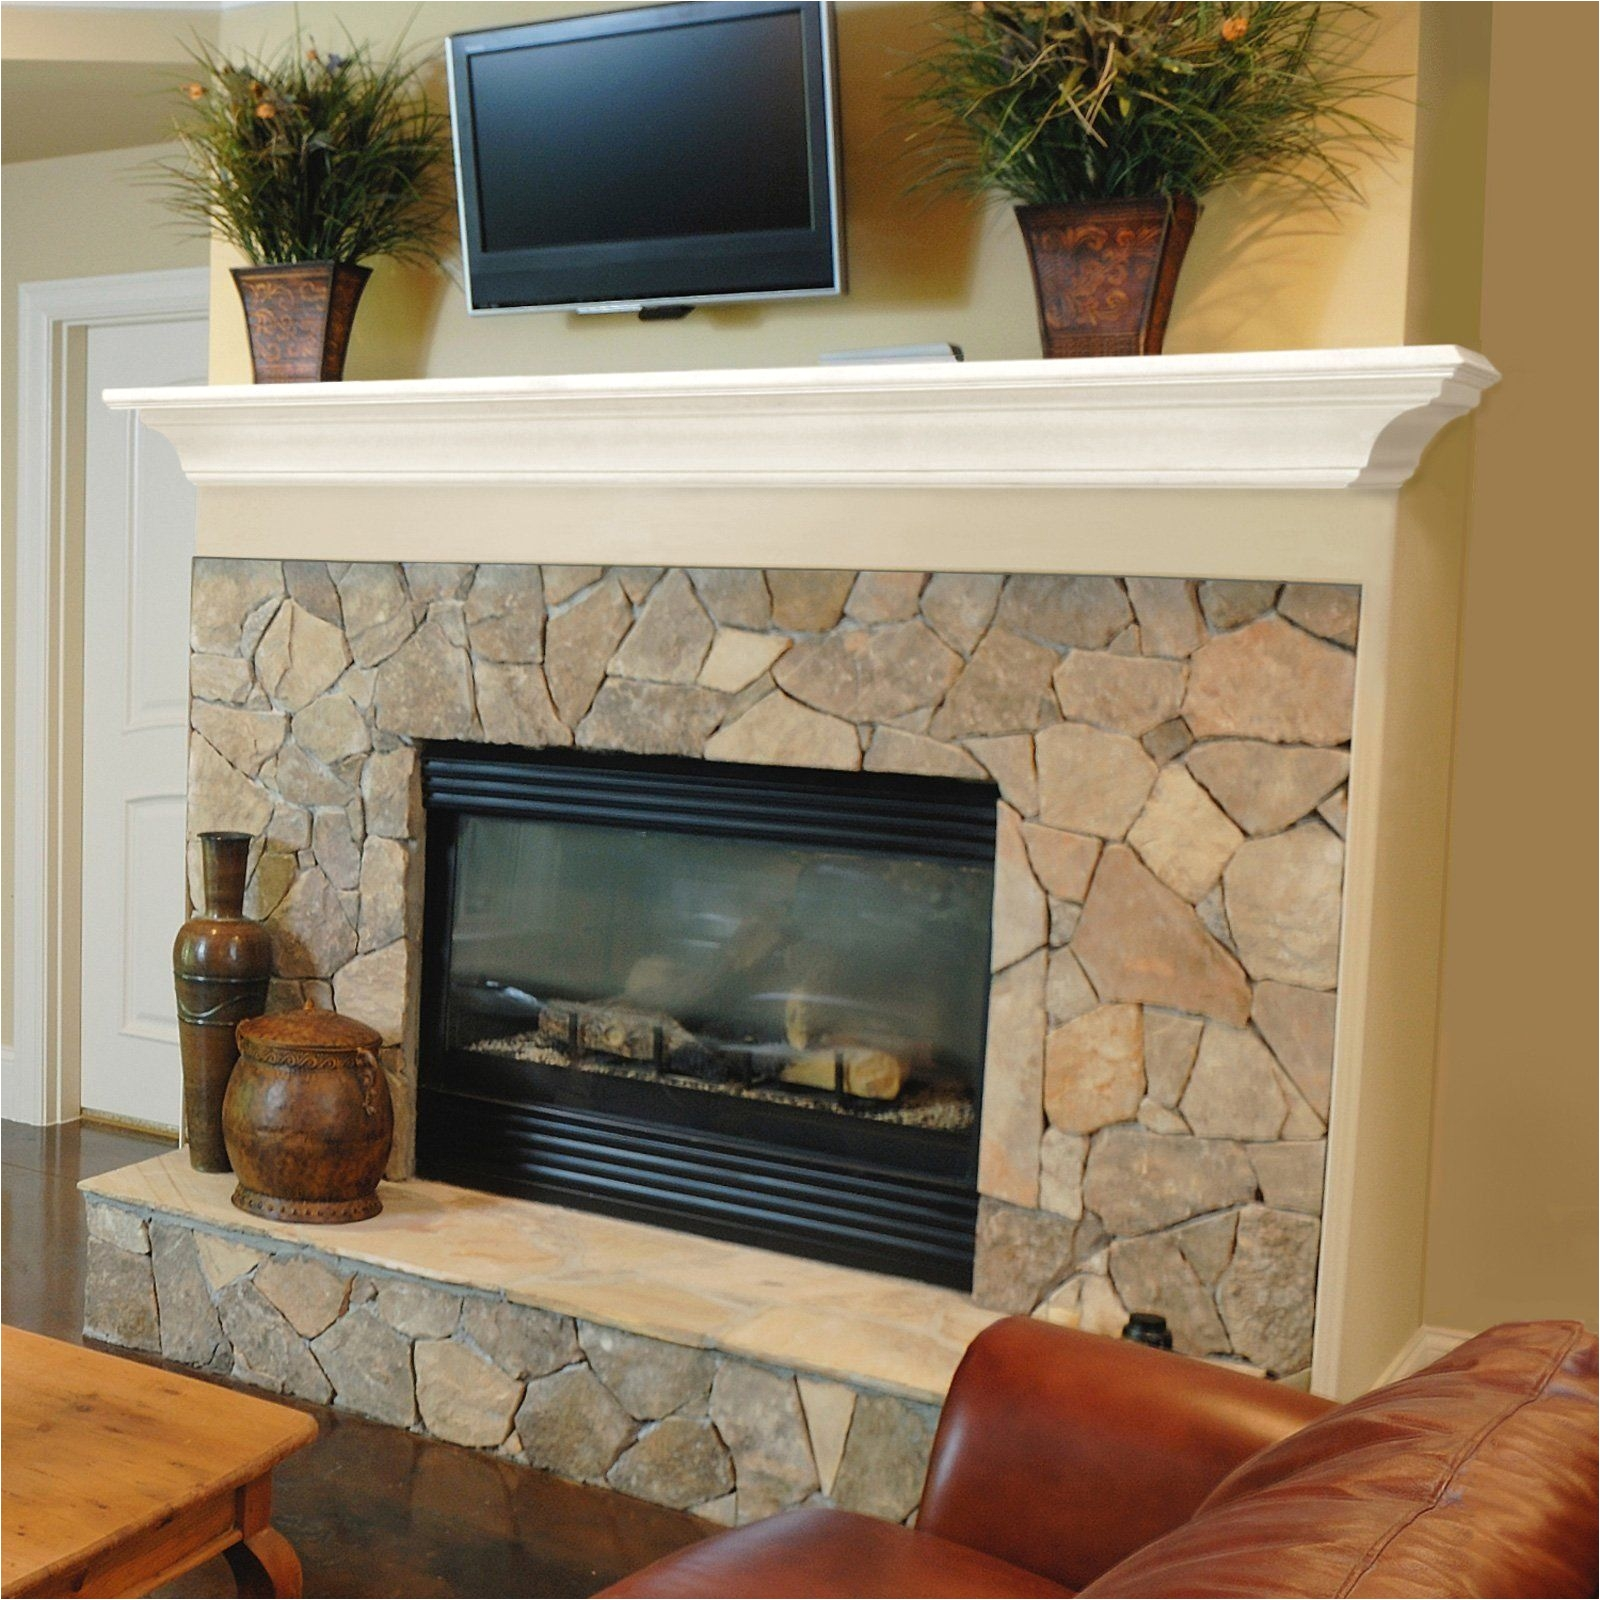 white mantel gas fireplace painted wooden white fireplace mantel shelf pinterest white of white mantel gas fireplace